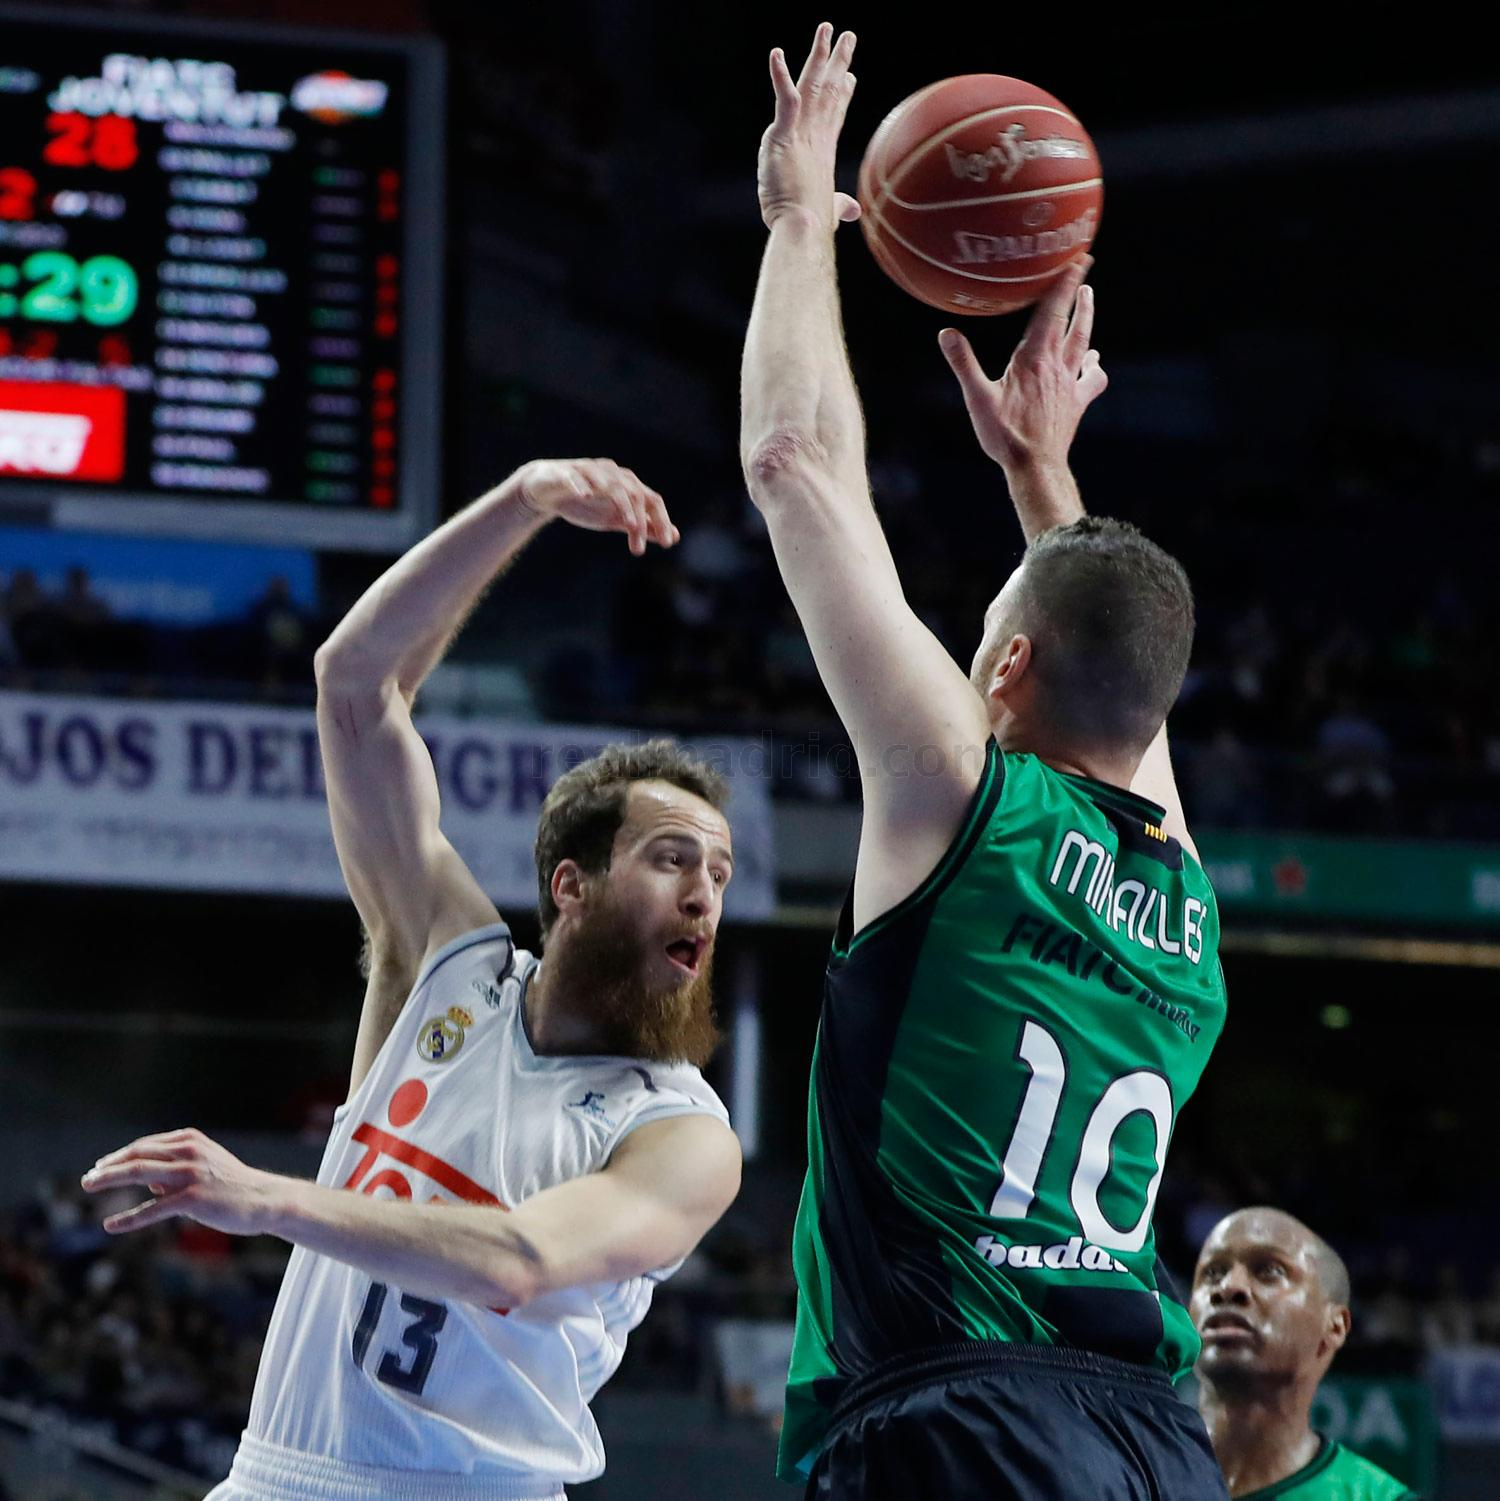 Real Madrid - Real Madrid - Fiatc Joventut - 17-04-2016